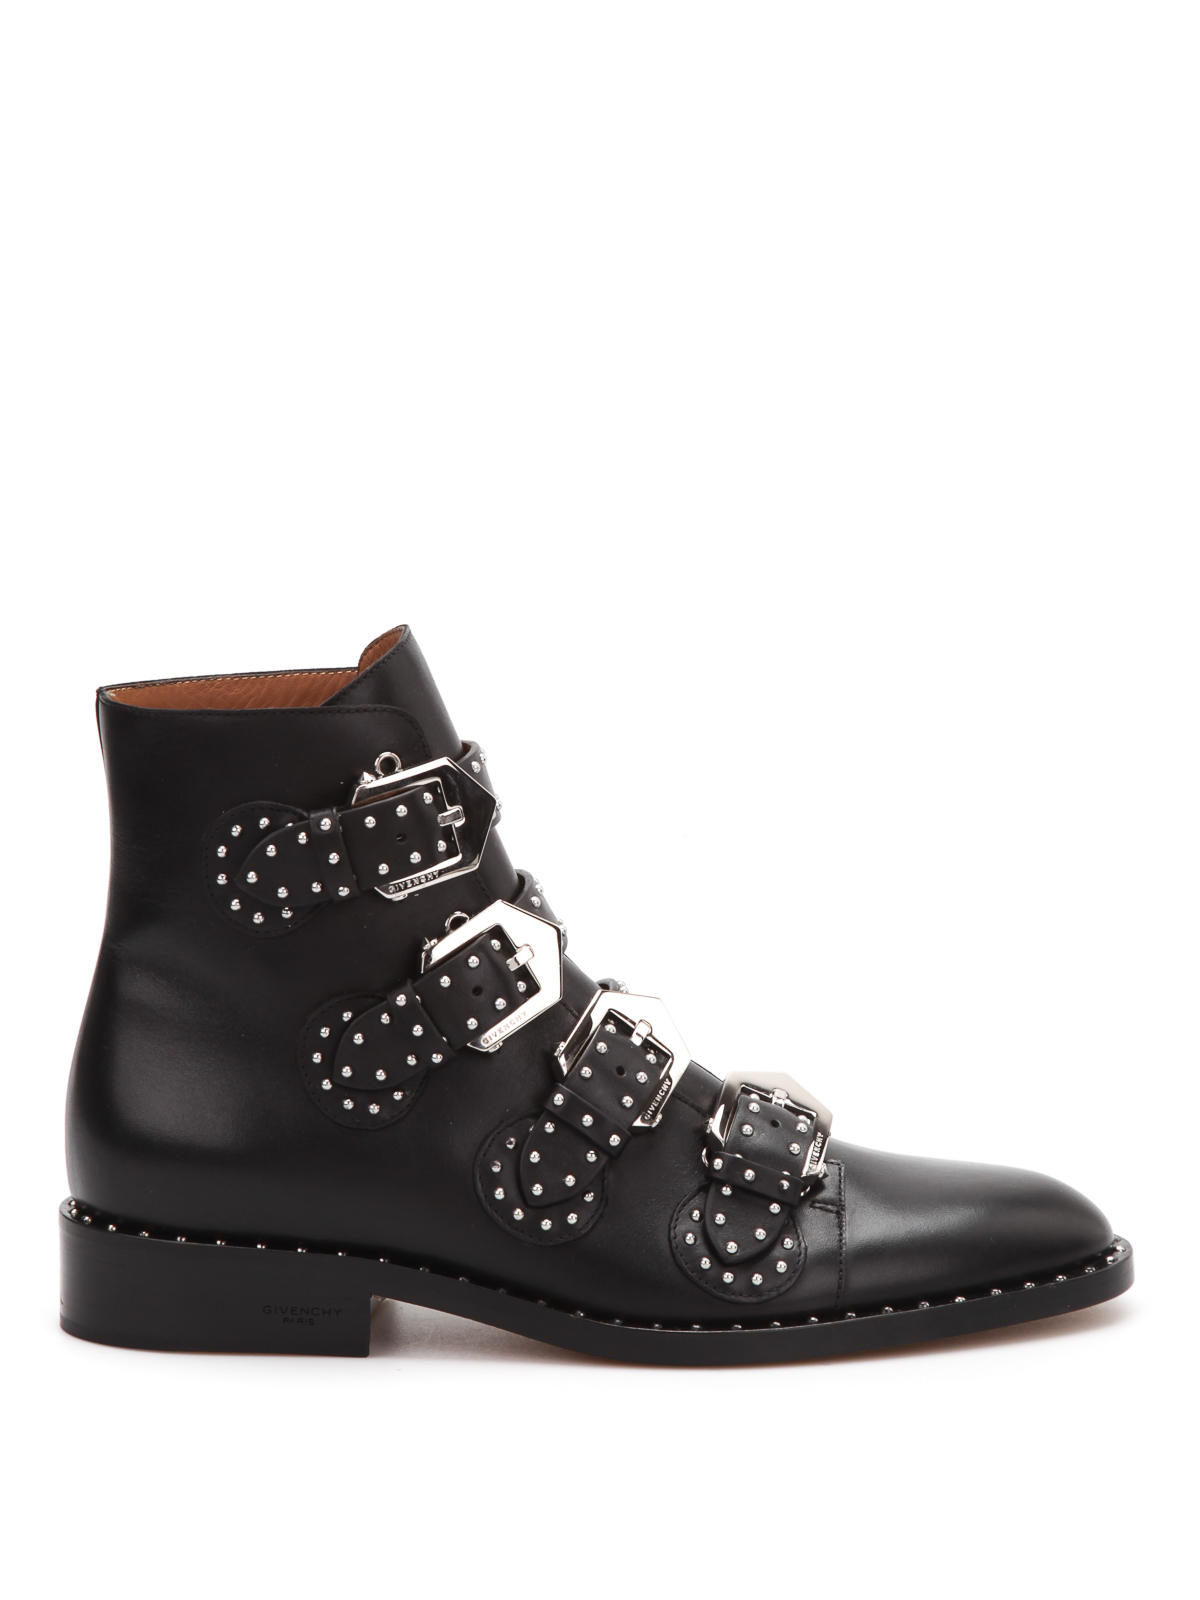 Find frye short boots with studs at ShopStyle. Shop the latest collection of frye short boots with studs from the most popular stores - all in one.